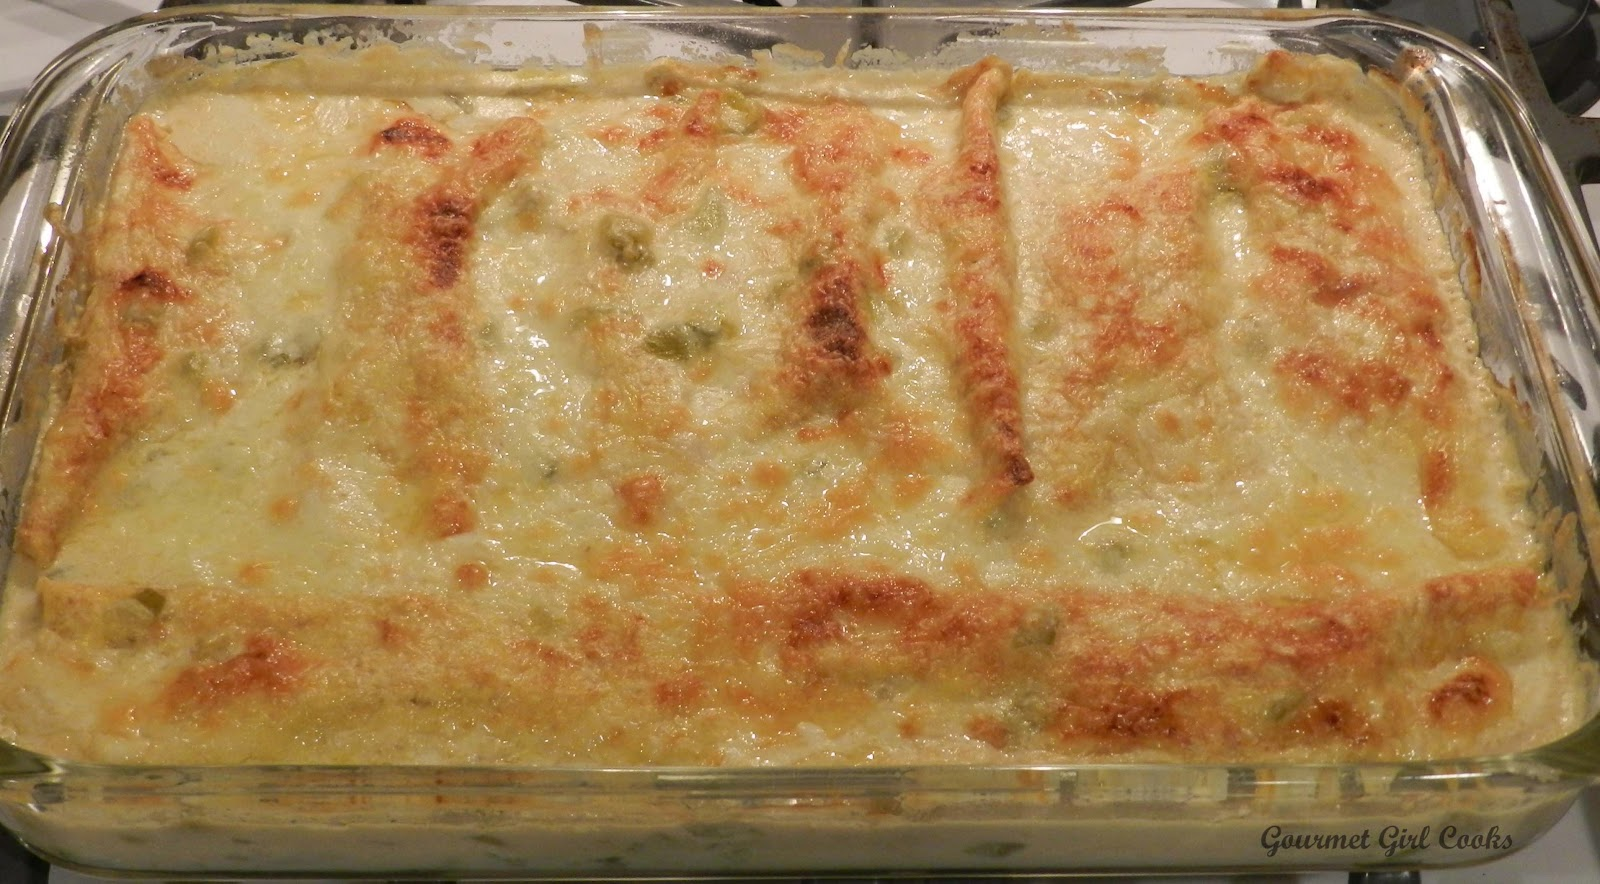 ... Girl Cooks: White Chicken Enchilada Casserole -- Low Carb & Wheat Free